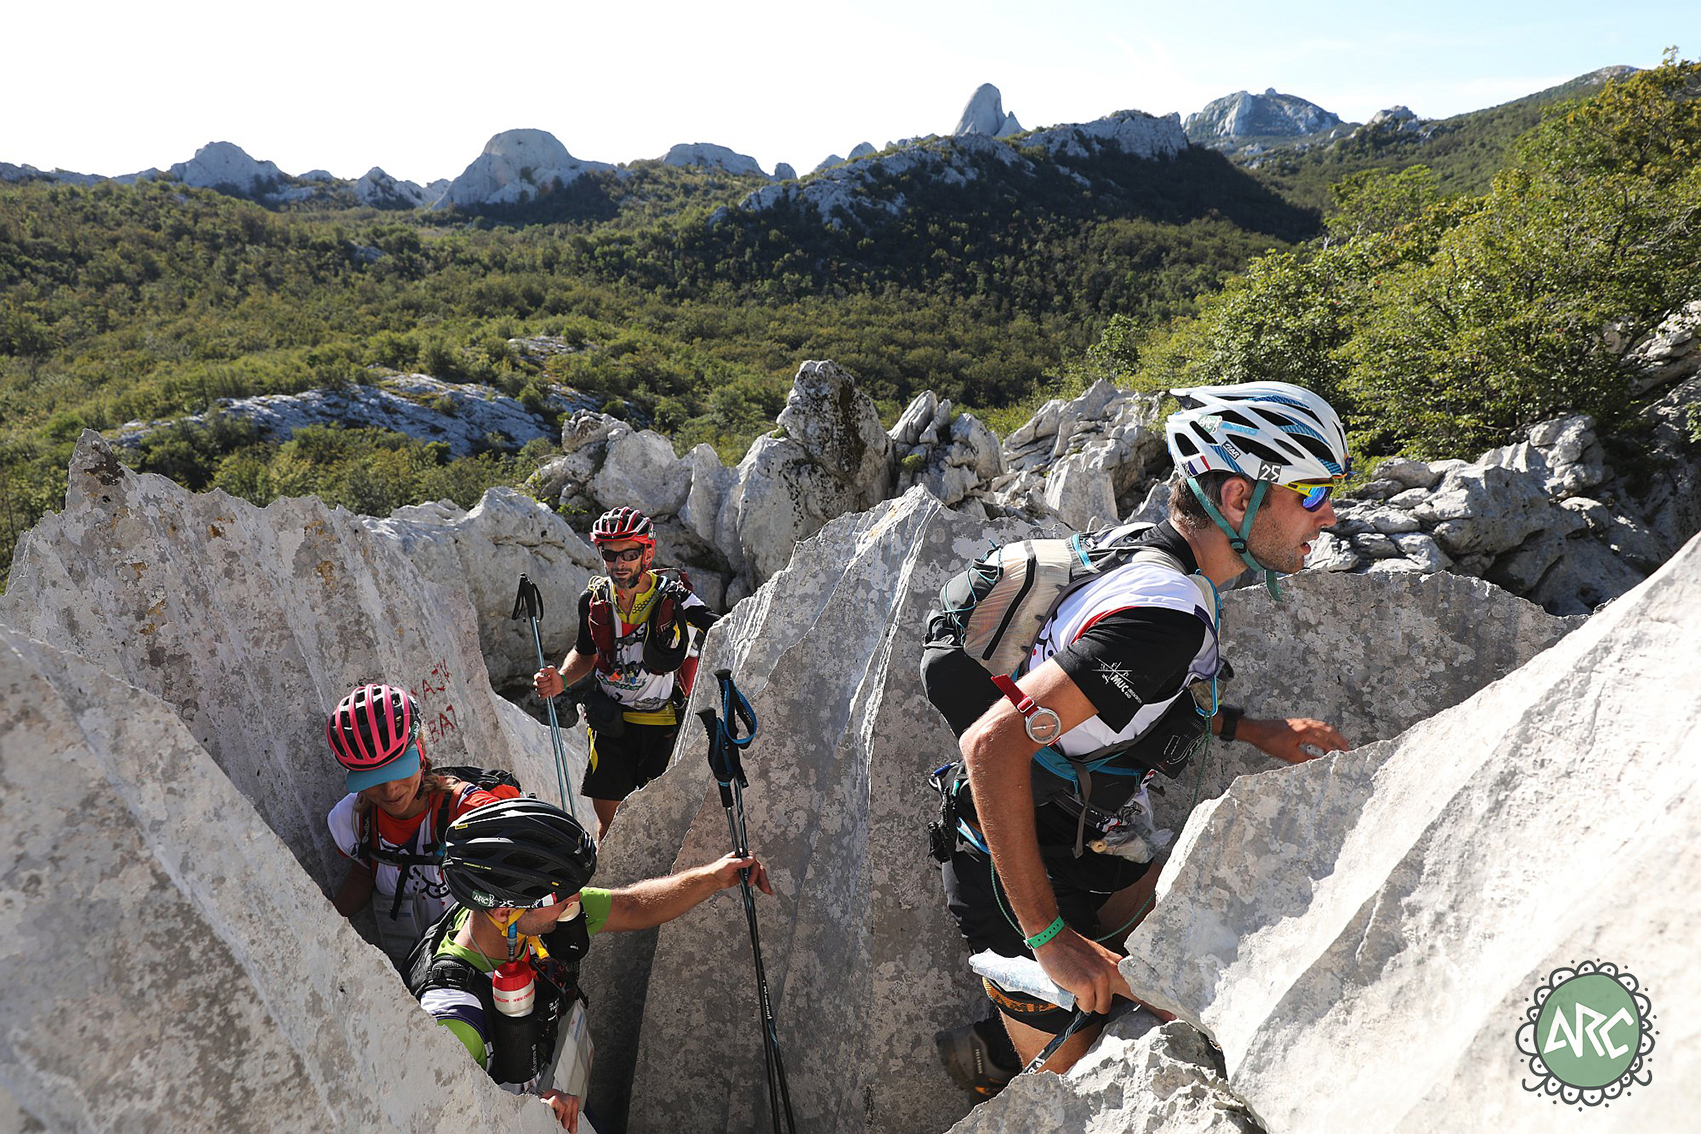 Racing at Adventure Race Croatia in Karst scenery